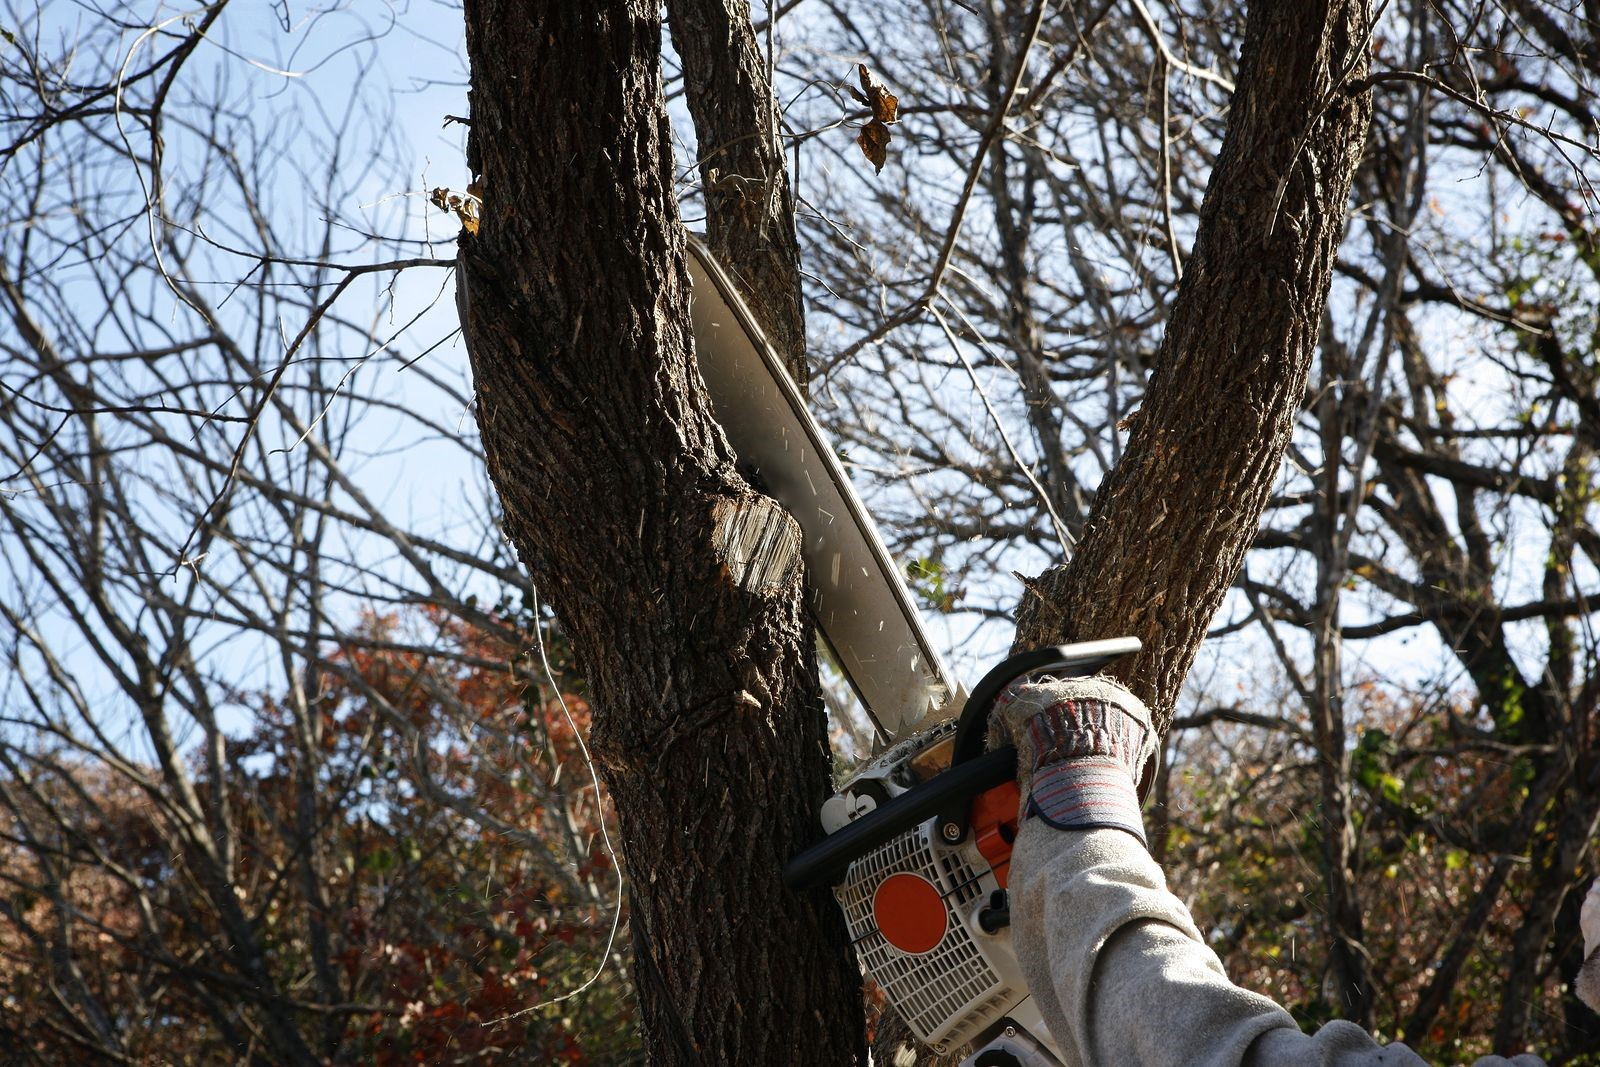 A Tree Service Firm in Marietta, GA Helps Spot and Remove Dying Trees